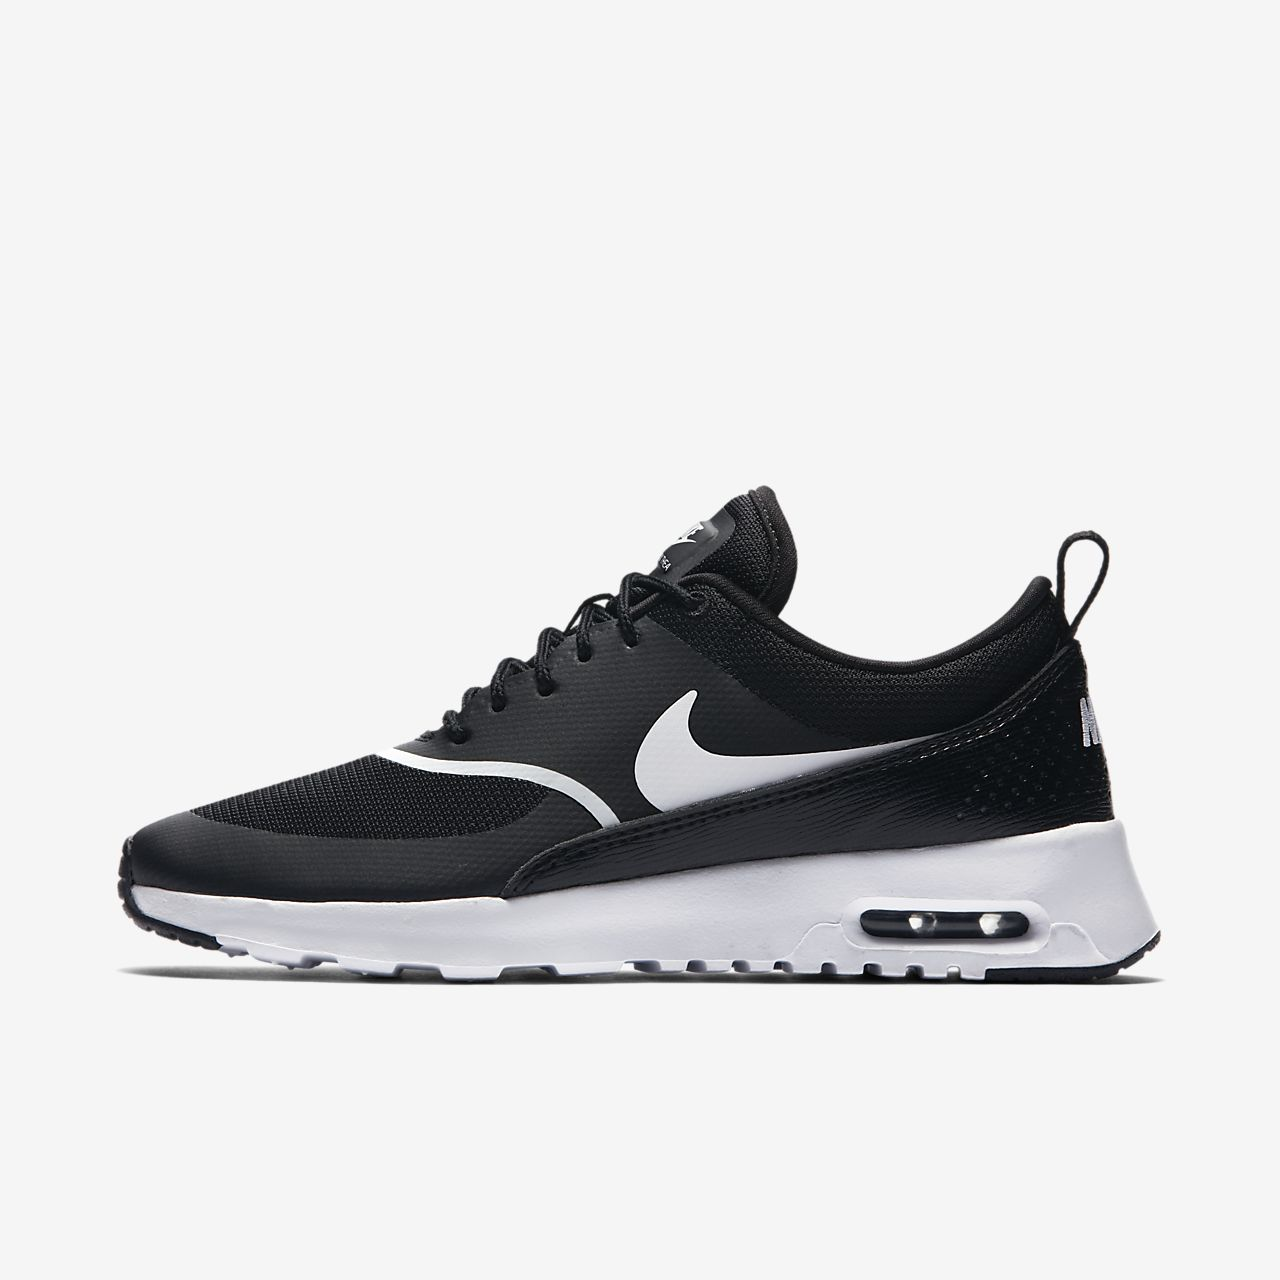 reputable site 46c79 5ca48 ... Nike Air Max Thea Women s Shoe